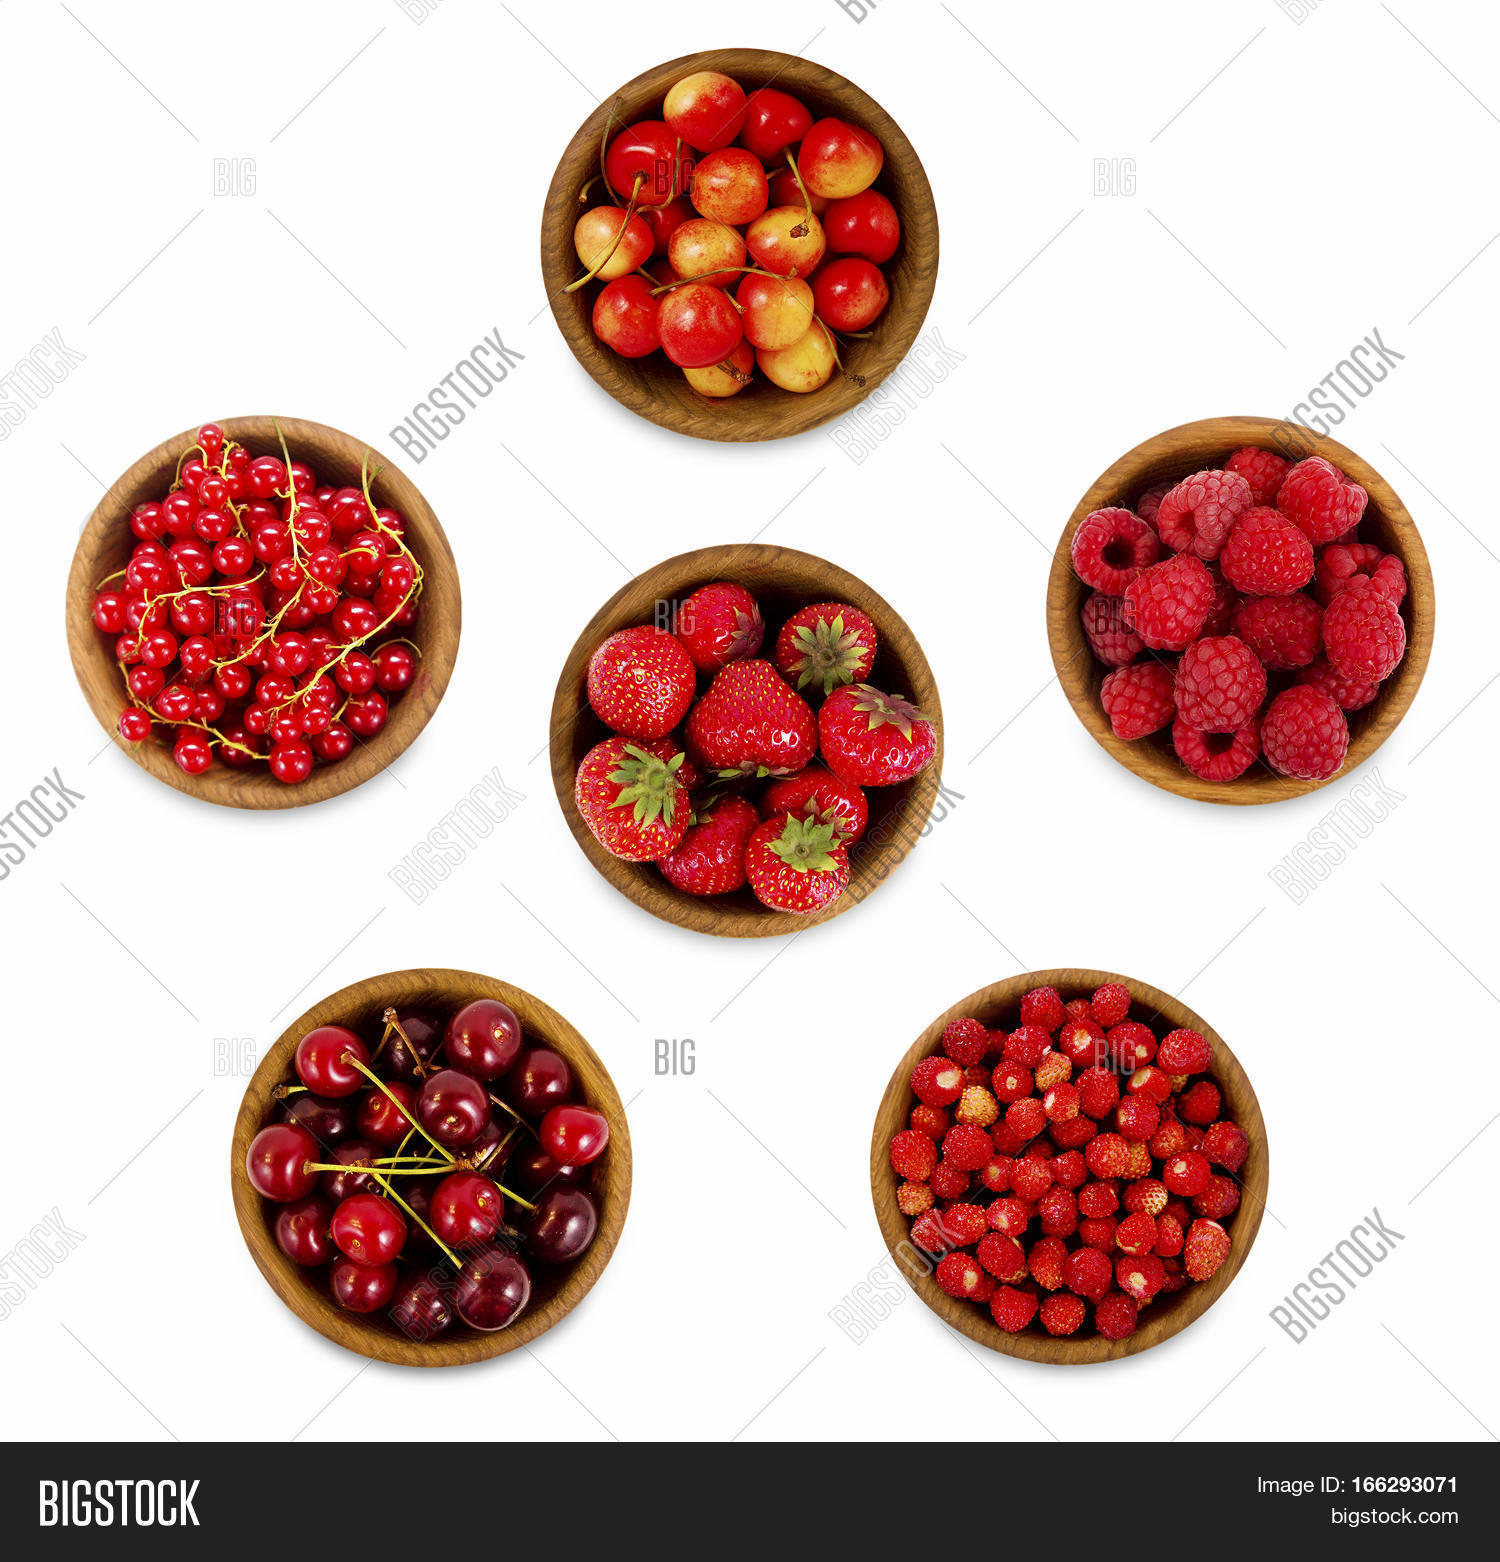 collection various red berries image u0026 photo bigstock